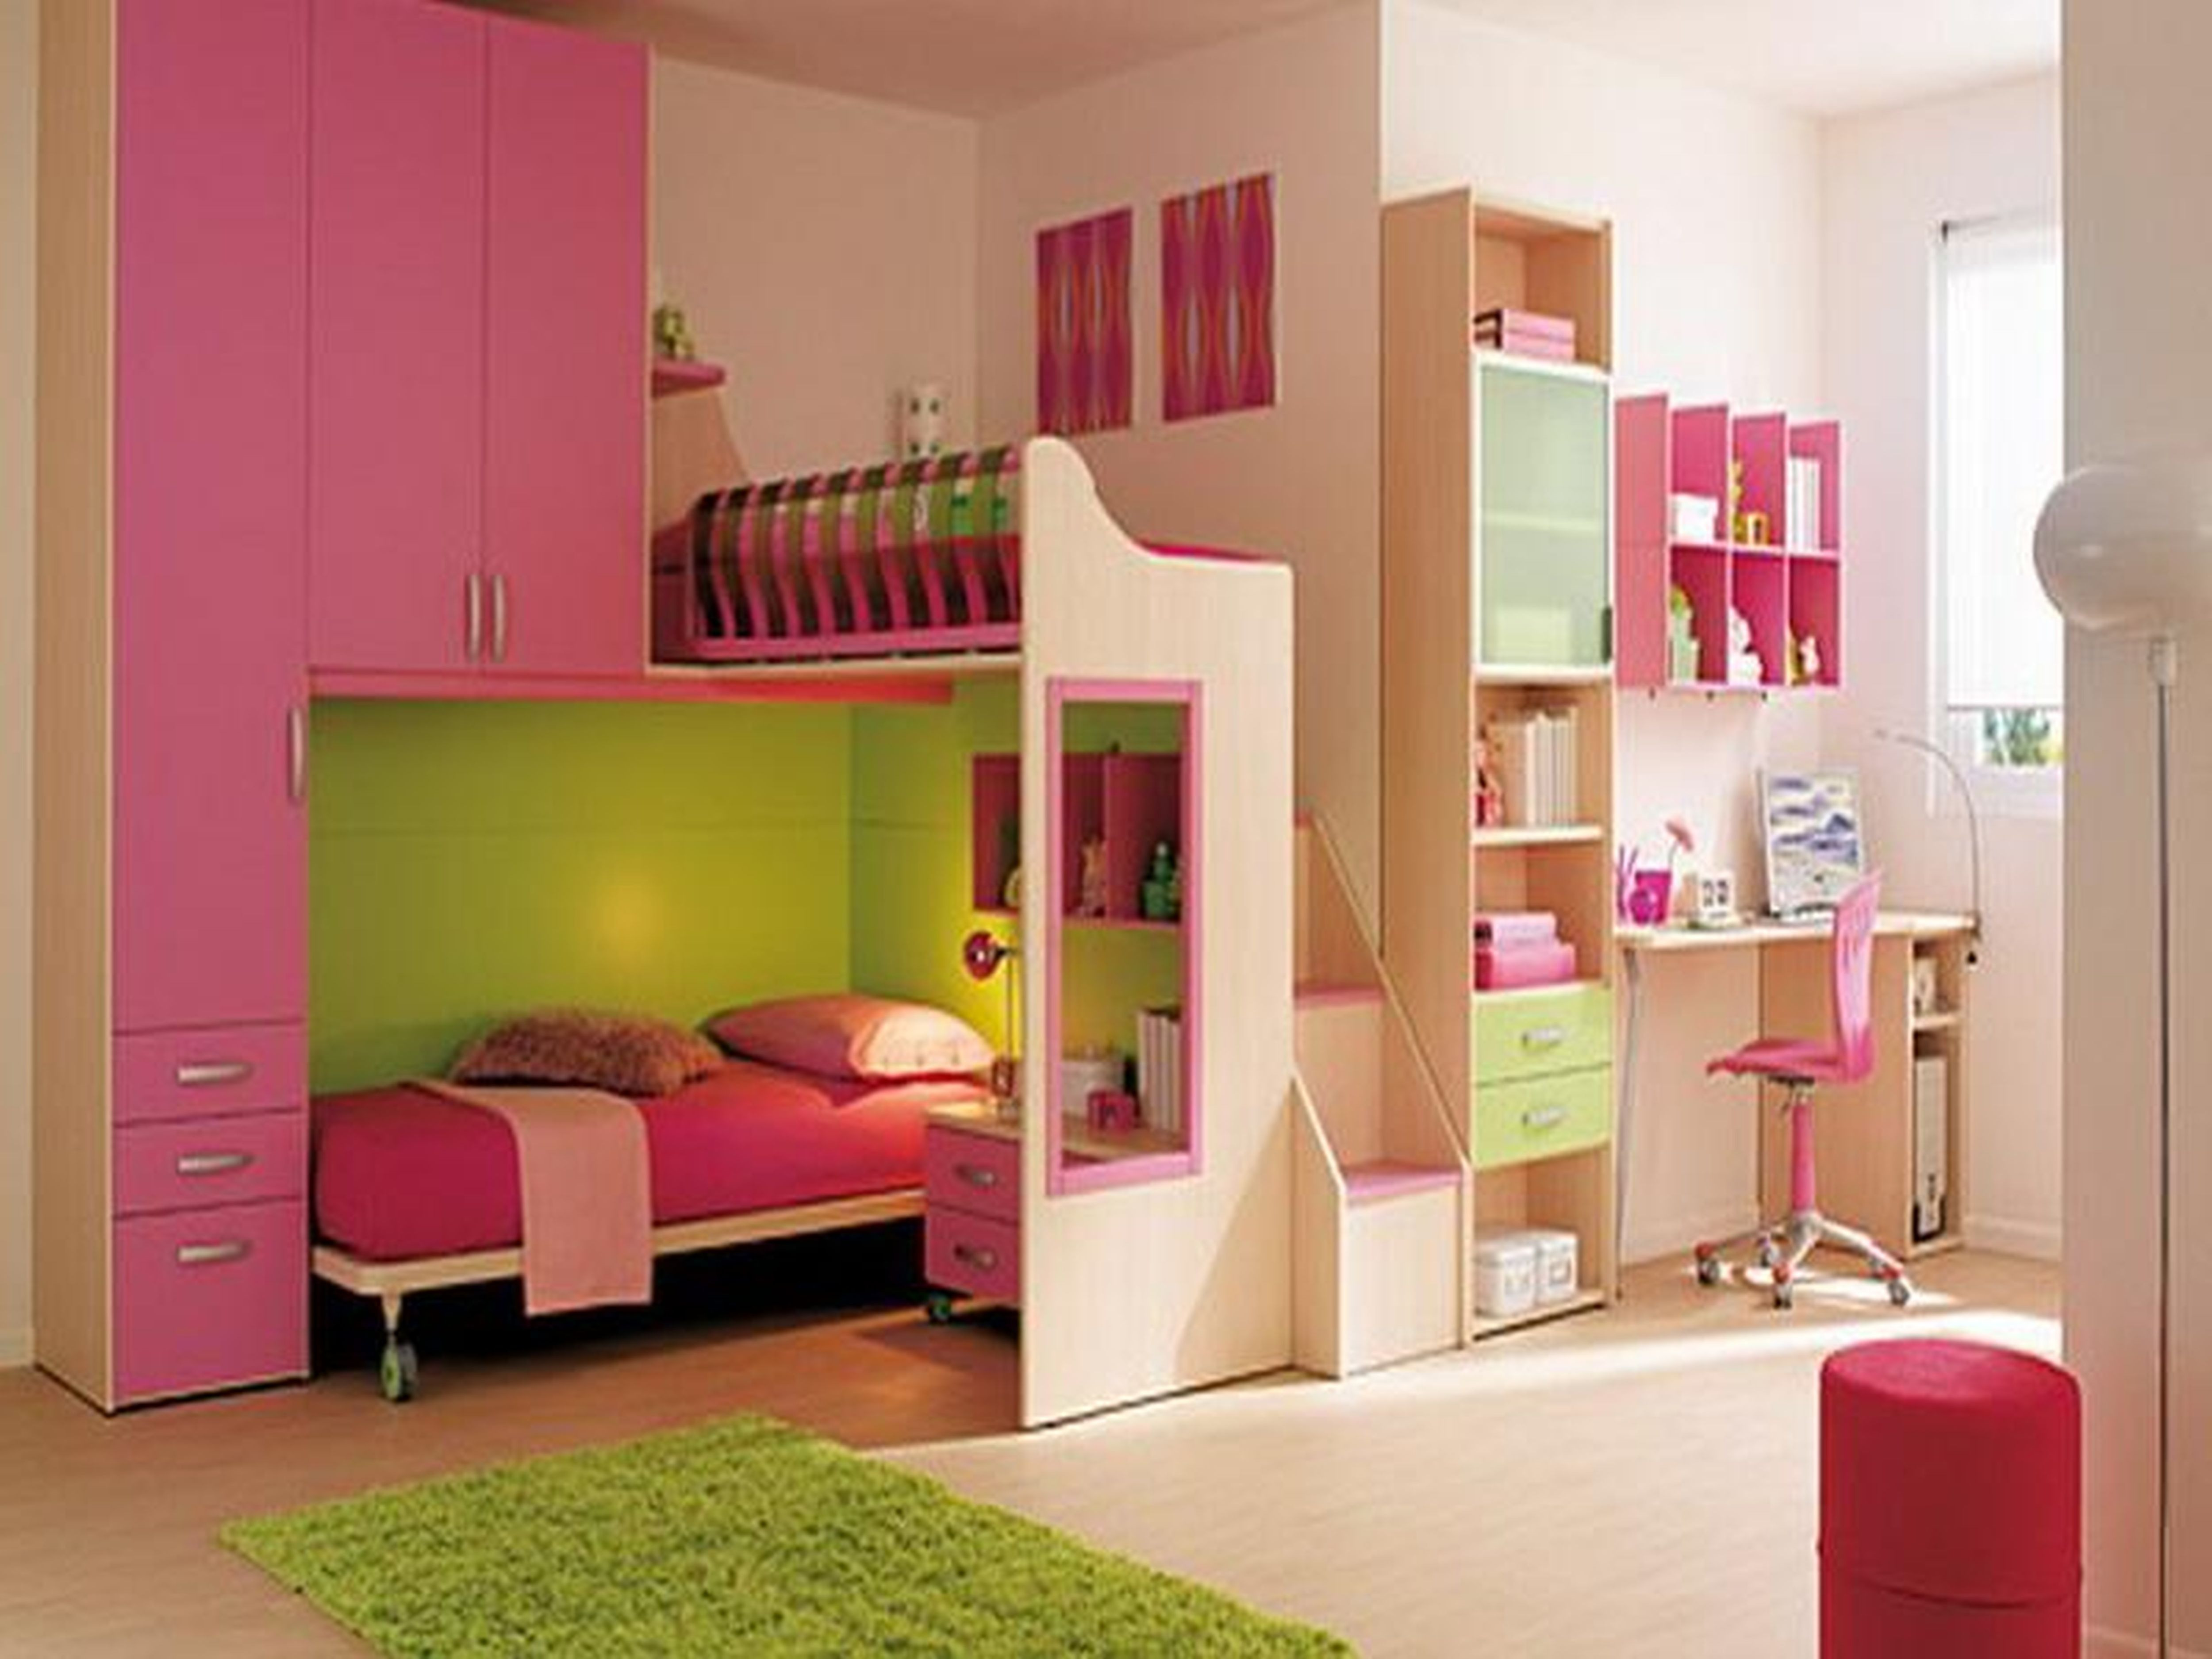 Best ideas about DIY Kids Bedroom Ideas . Save or Pin DIY Storage Ideas For Kids Room Crafts To Do With Kids Now.